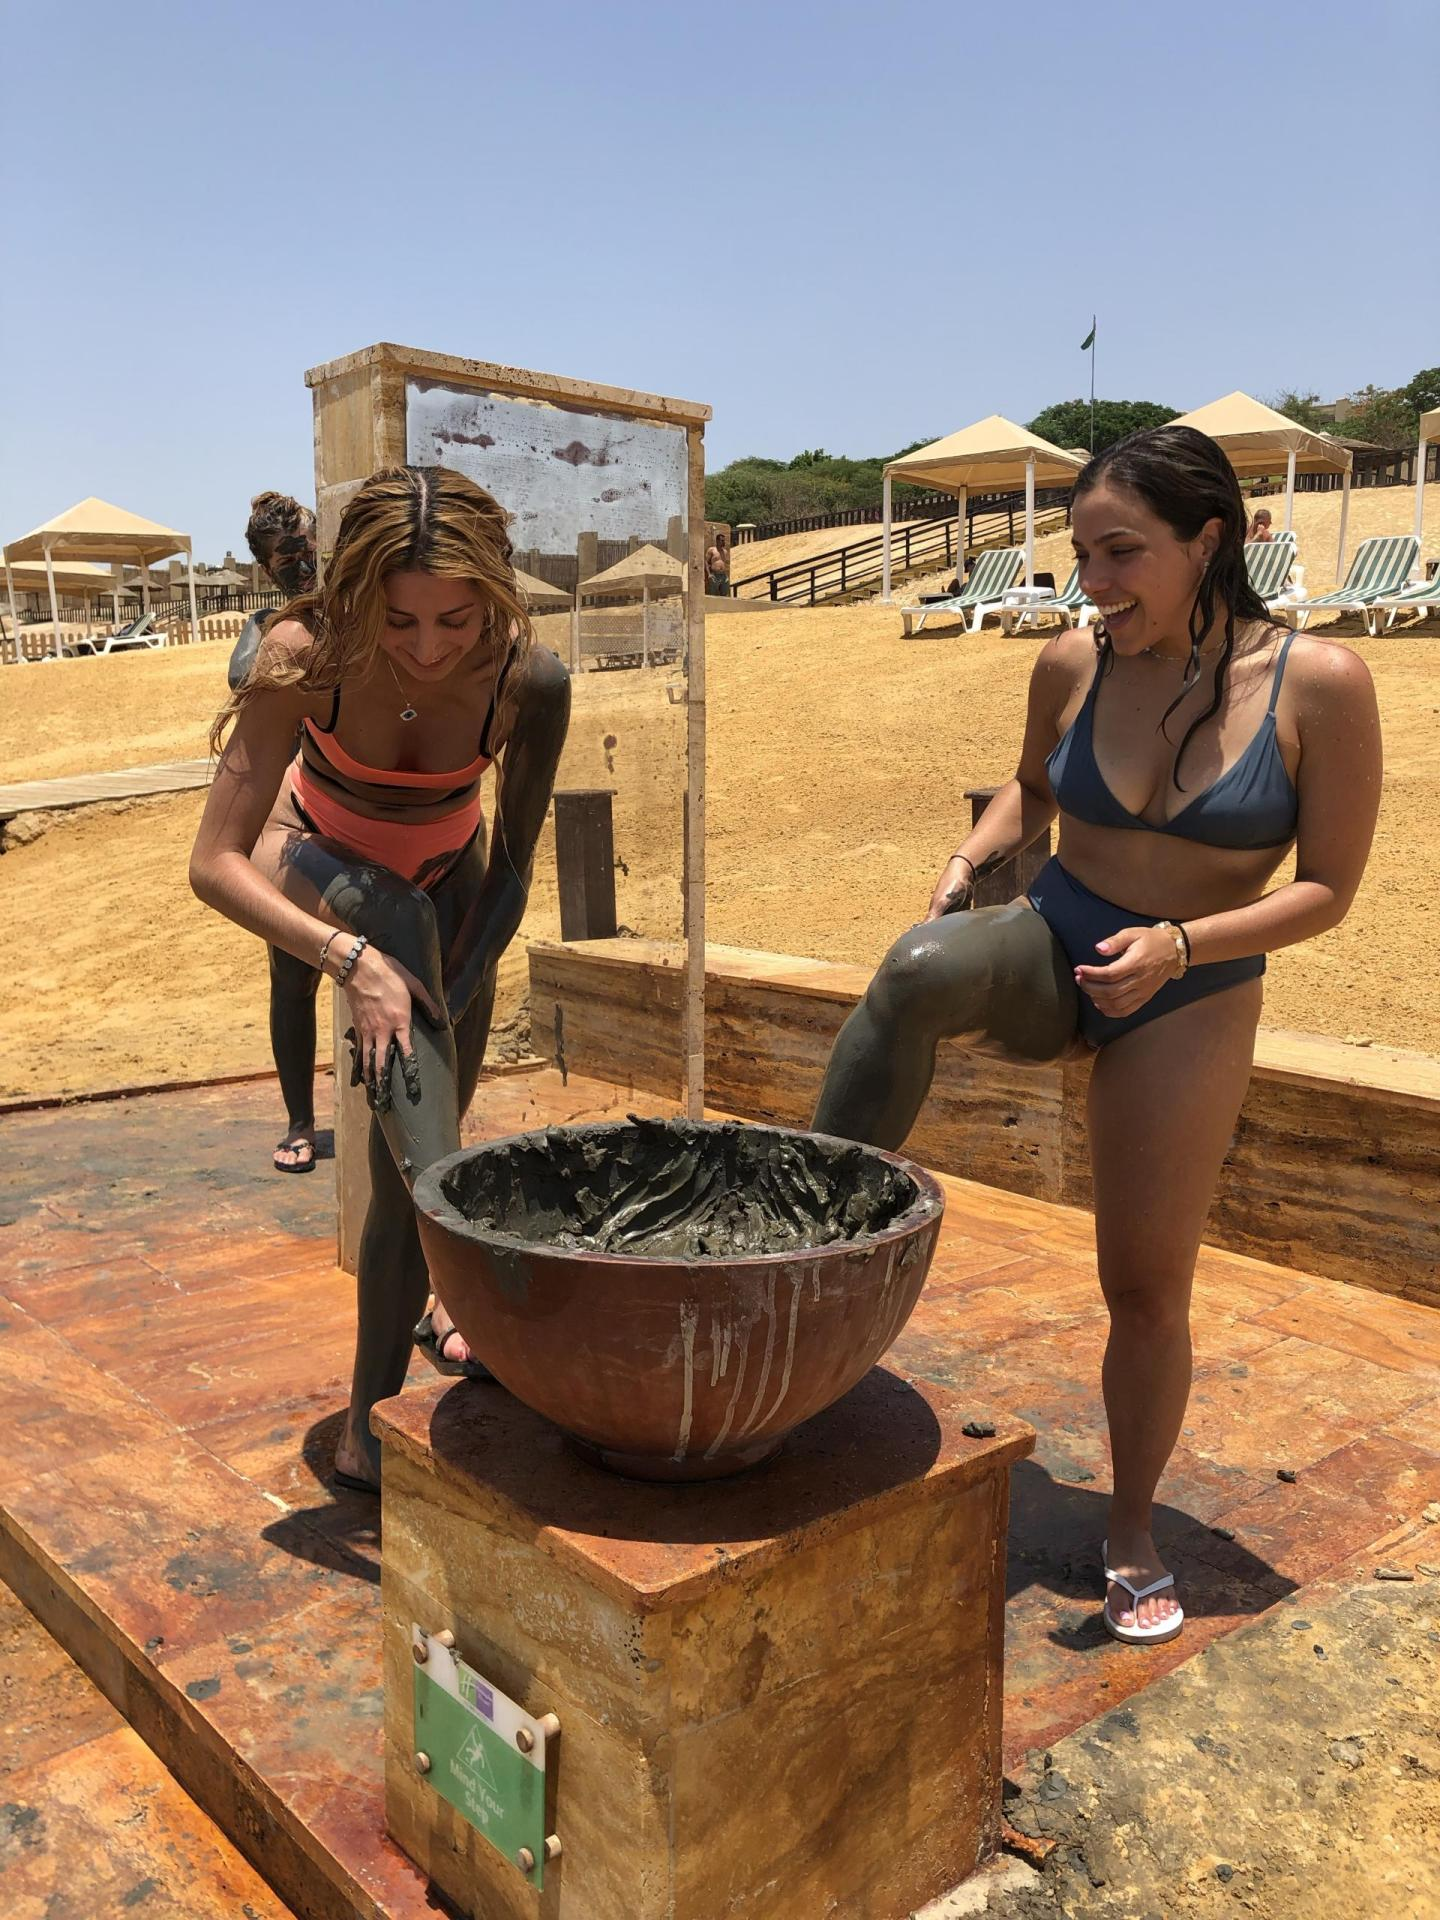 Two women visiting the Dead Sea covering themselves in mud.